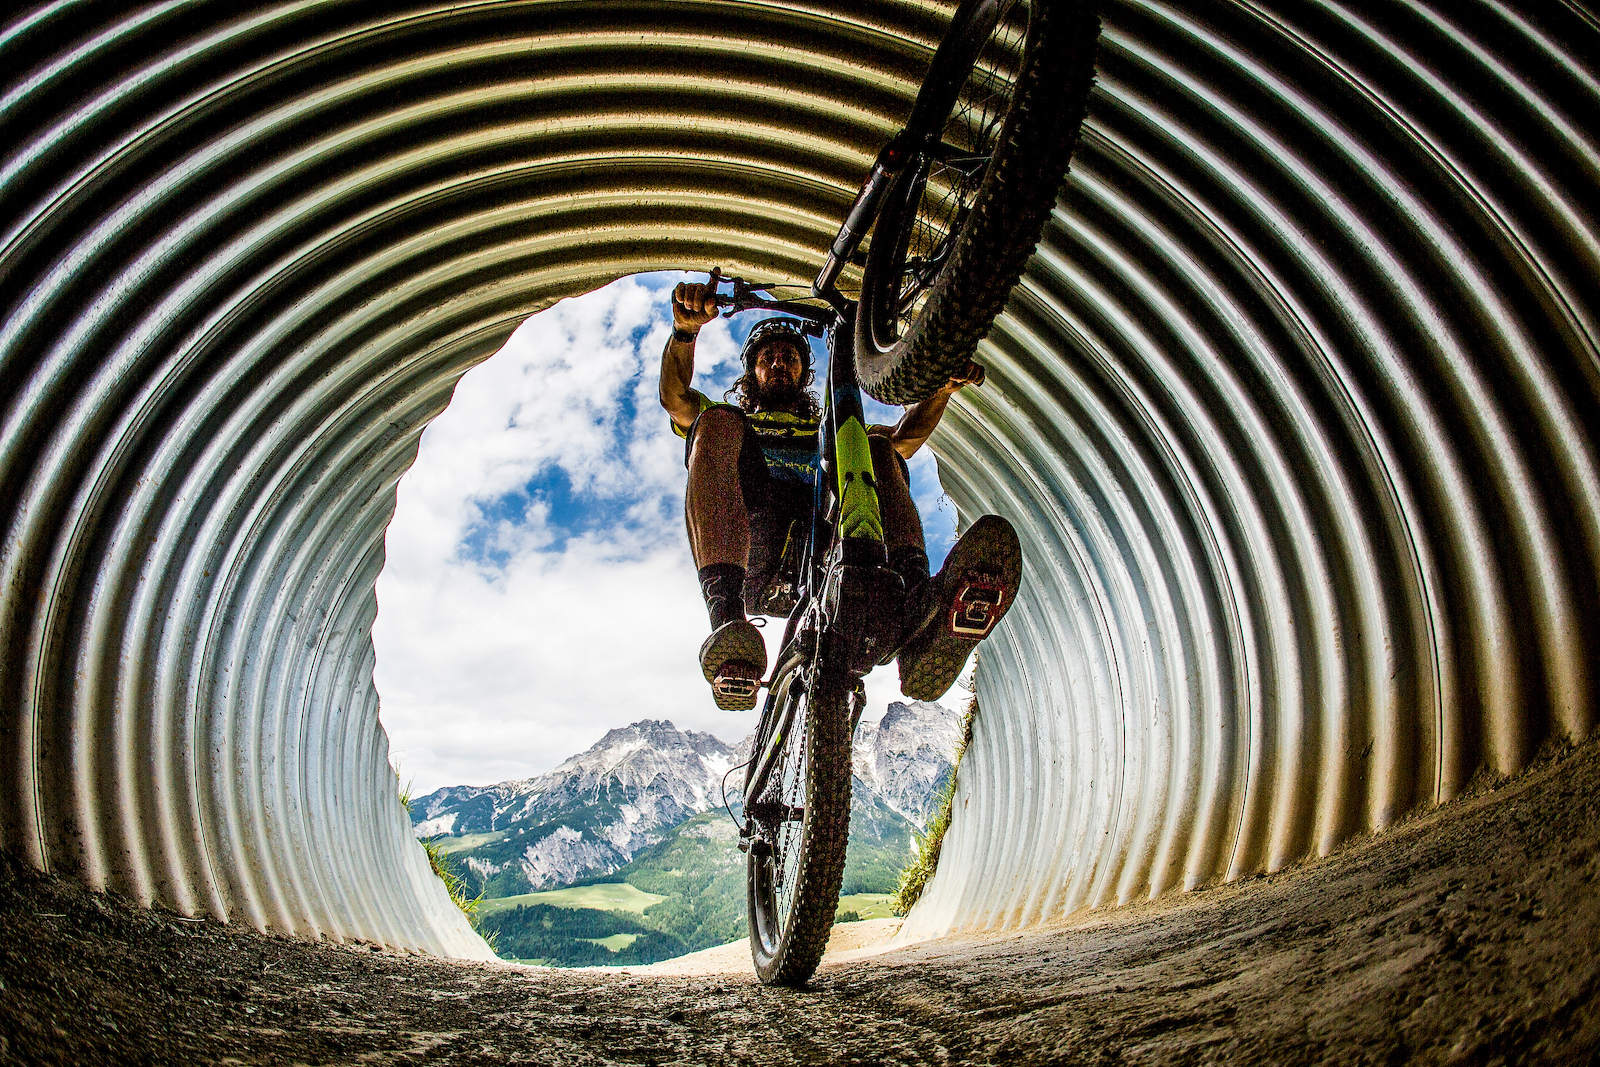 During the Leogang UCI MTB DH World Cup